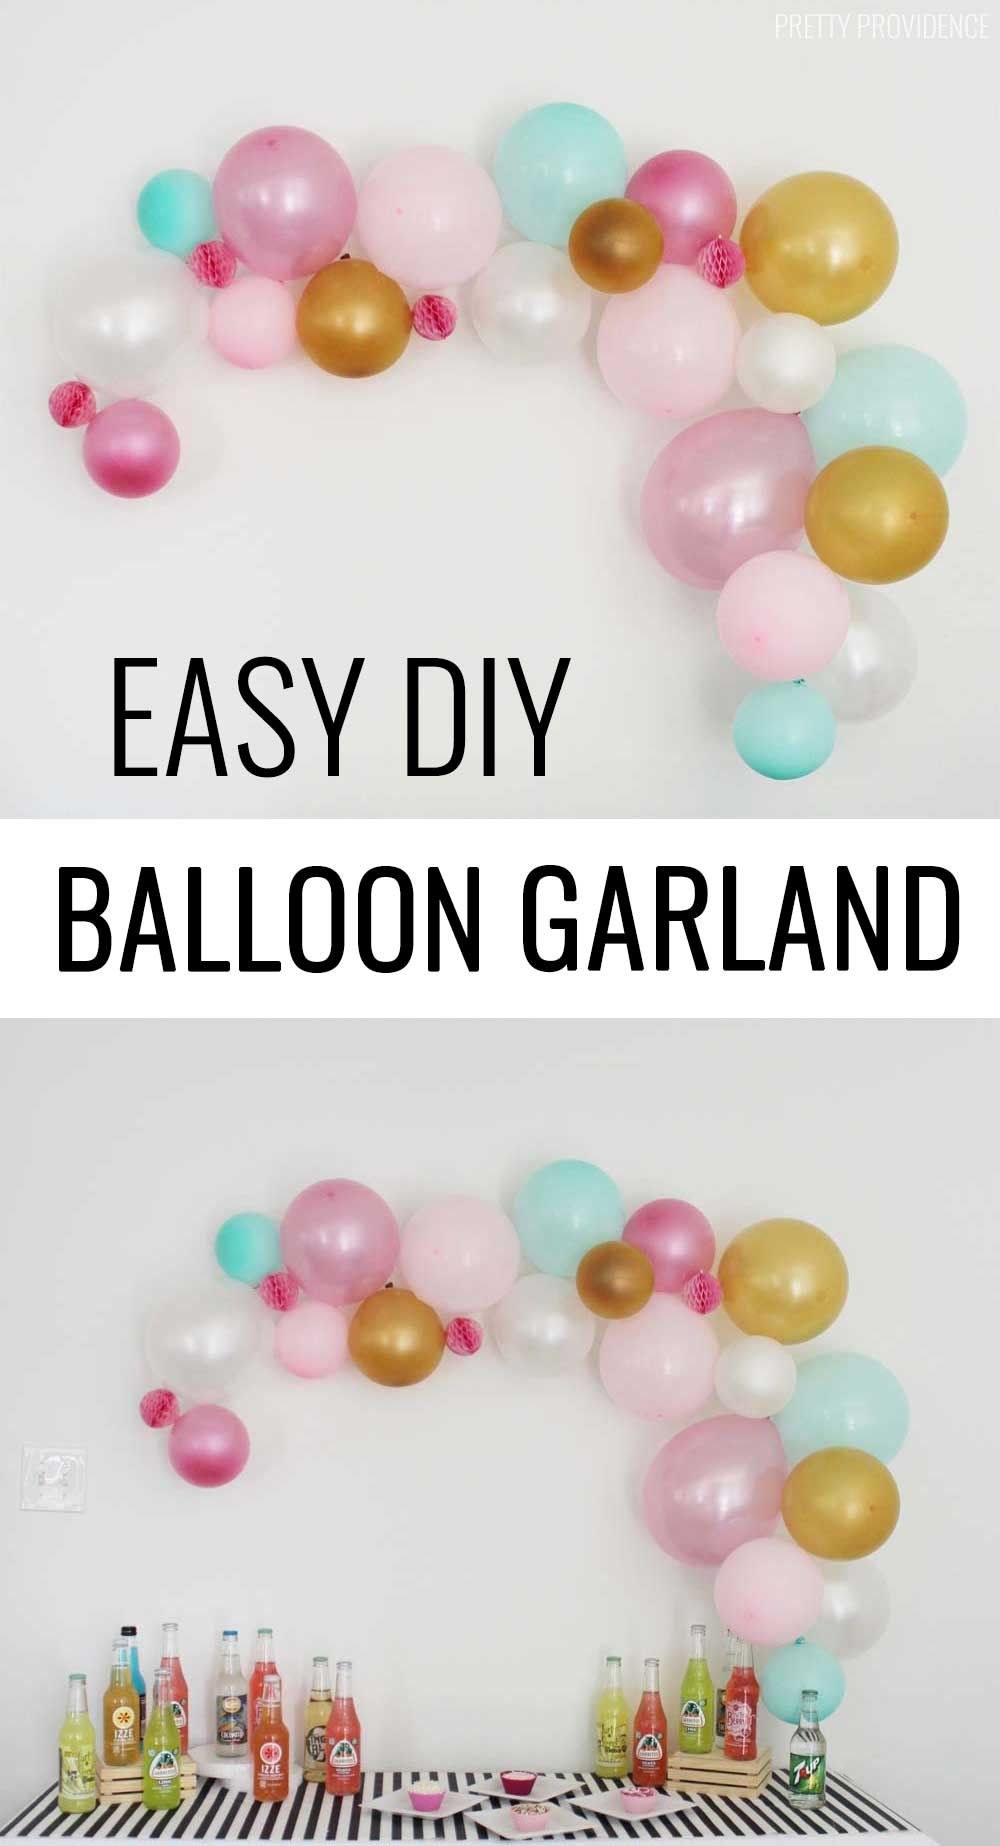 EASY Party Decor DIY Balloon Garlands Are Amazing And Cheap Easy To Make